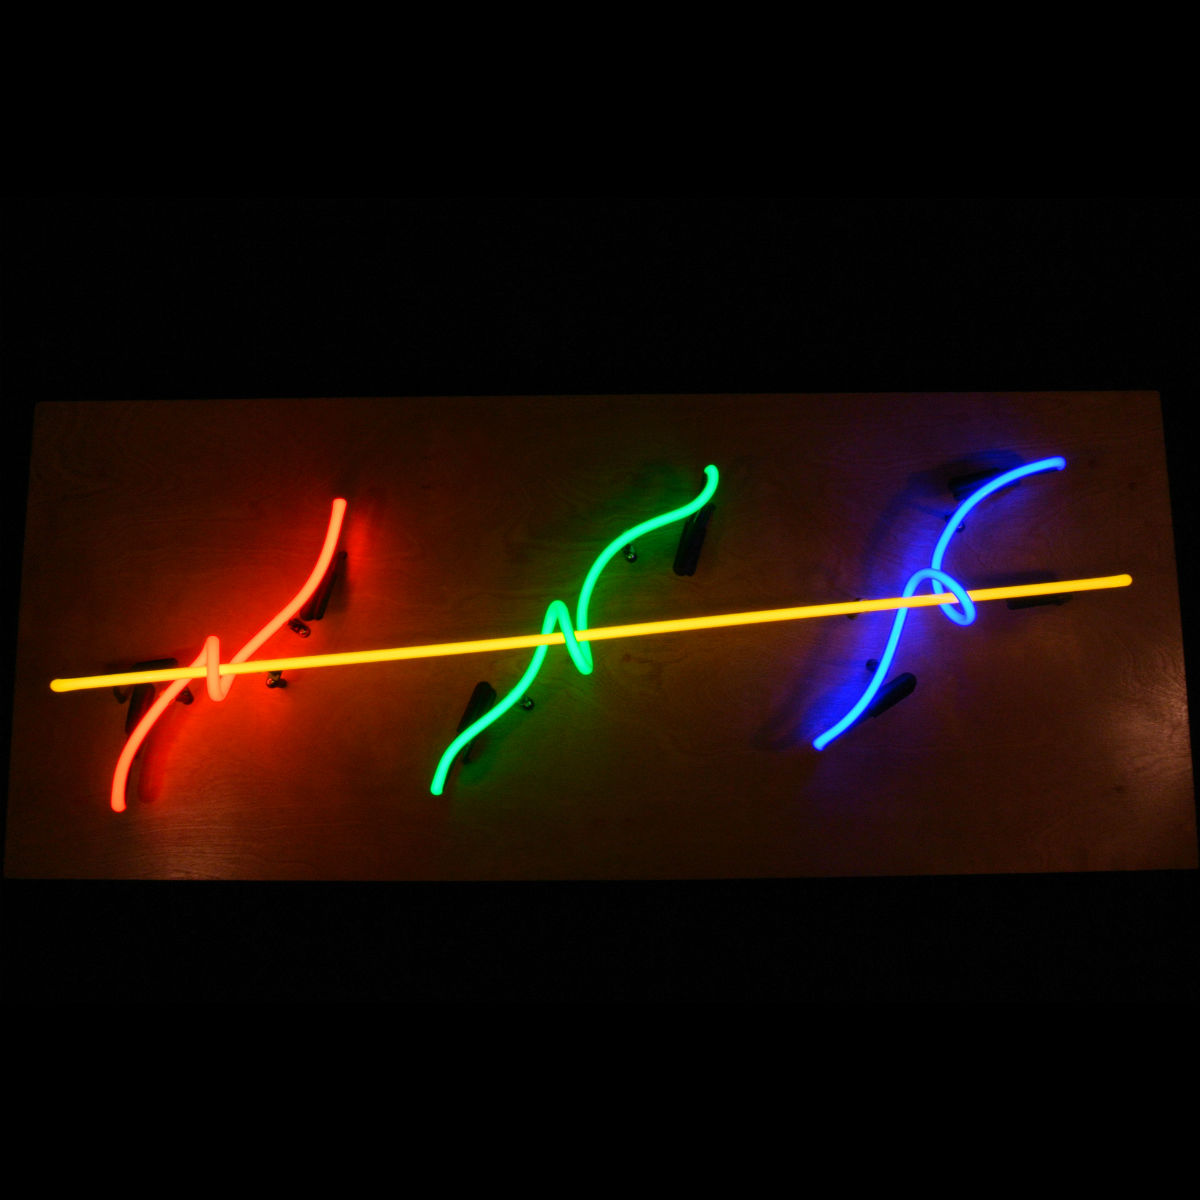 Designer Hand-blown Neon Artworks by John Barton - BartonNeonMagic.com